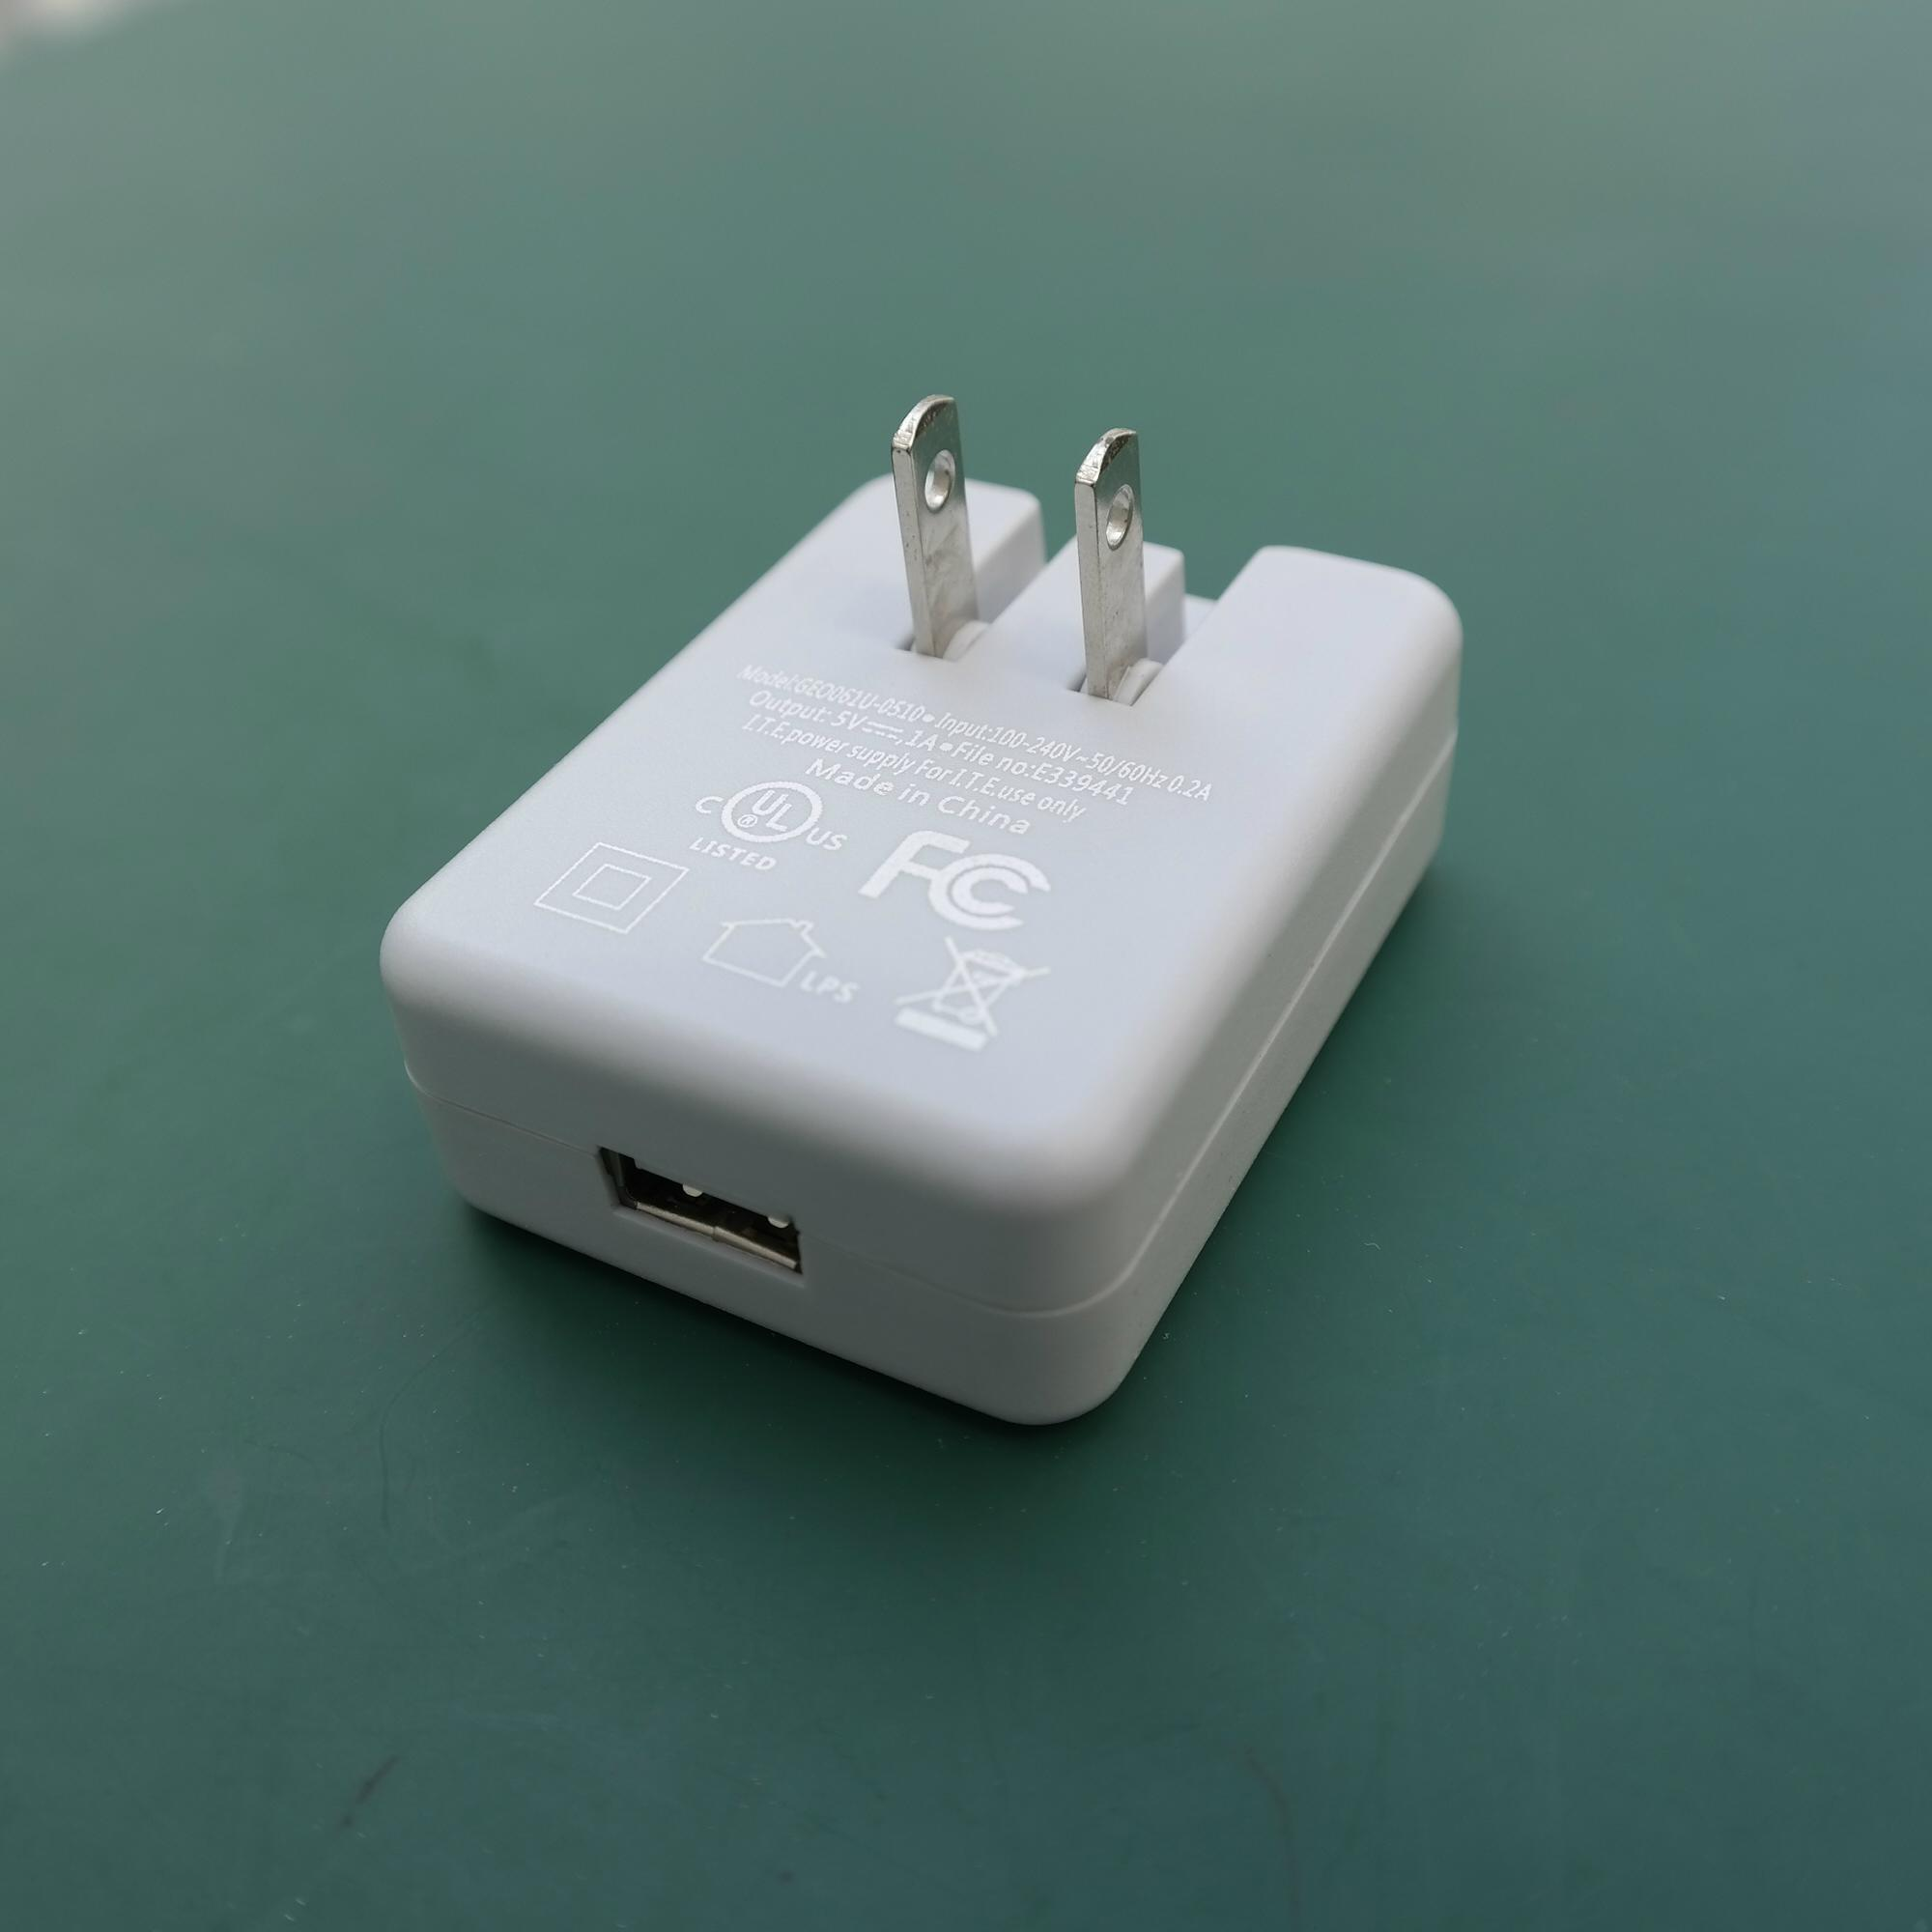 Sell USB Battery charger 5V0.5A Model:GFP051-0505-1(US plug) 10